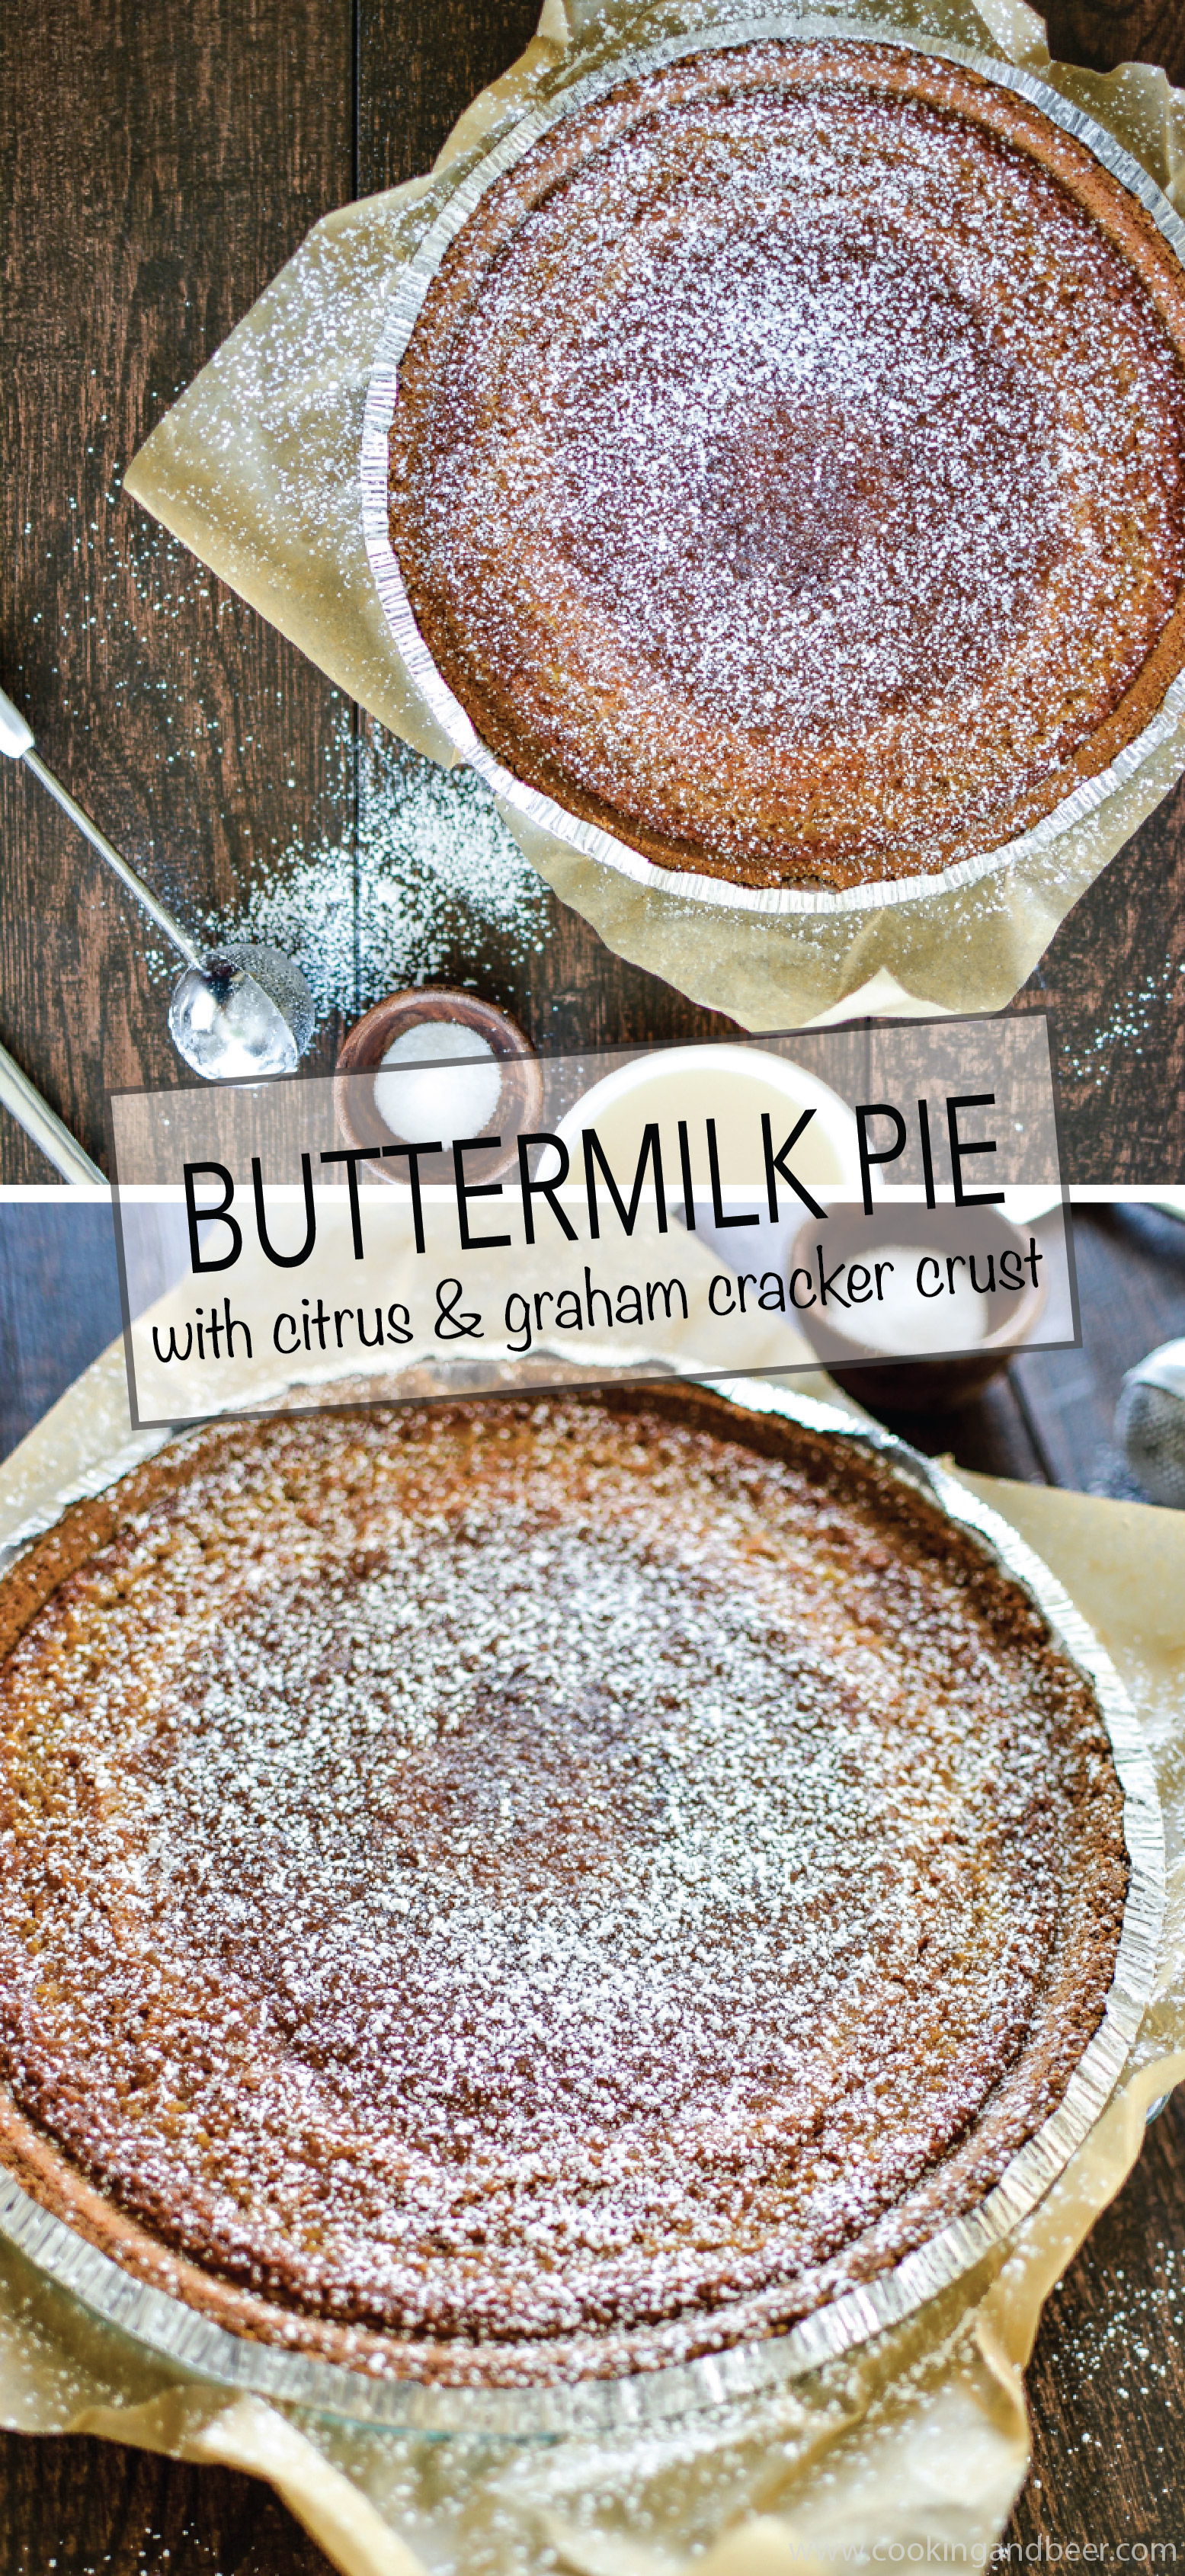 Buttermilk Pie with Citrus and Graham Cracker Crust is a summer pie recipe to get excited about! | www.cookingandbeer.com